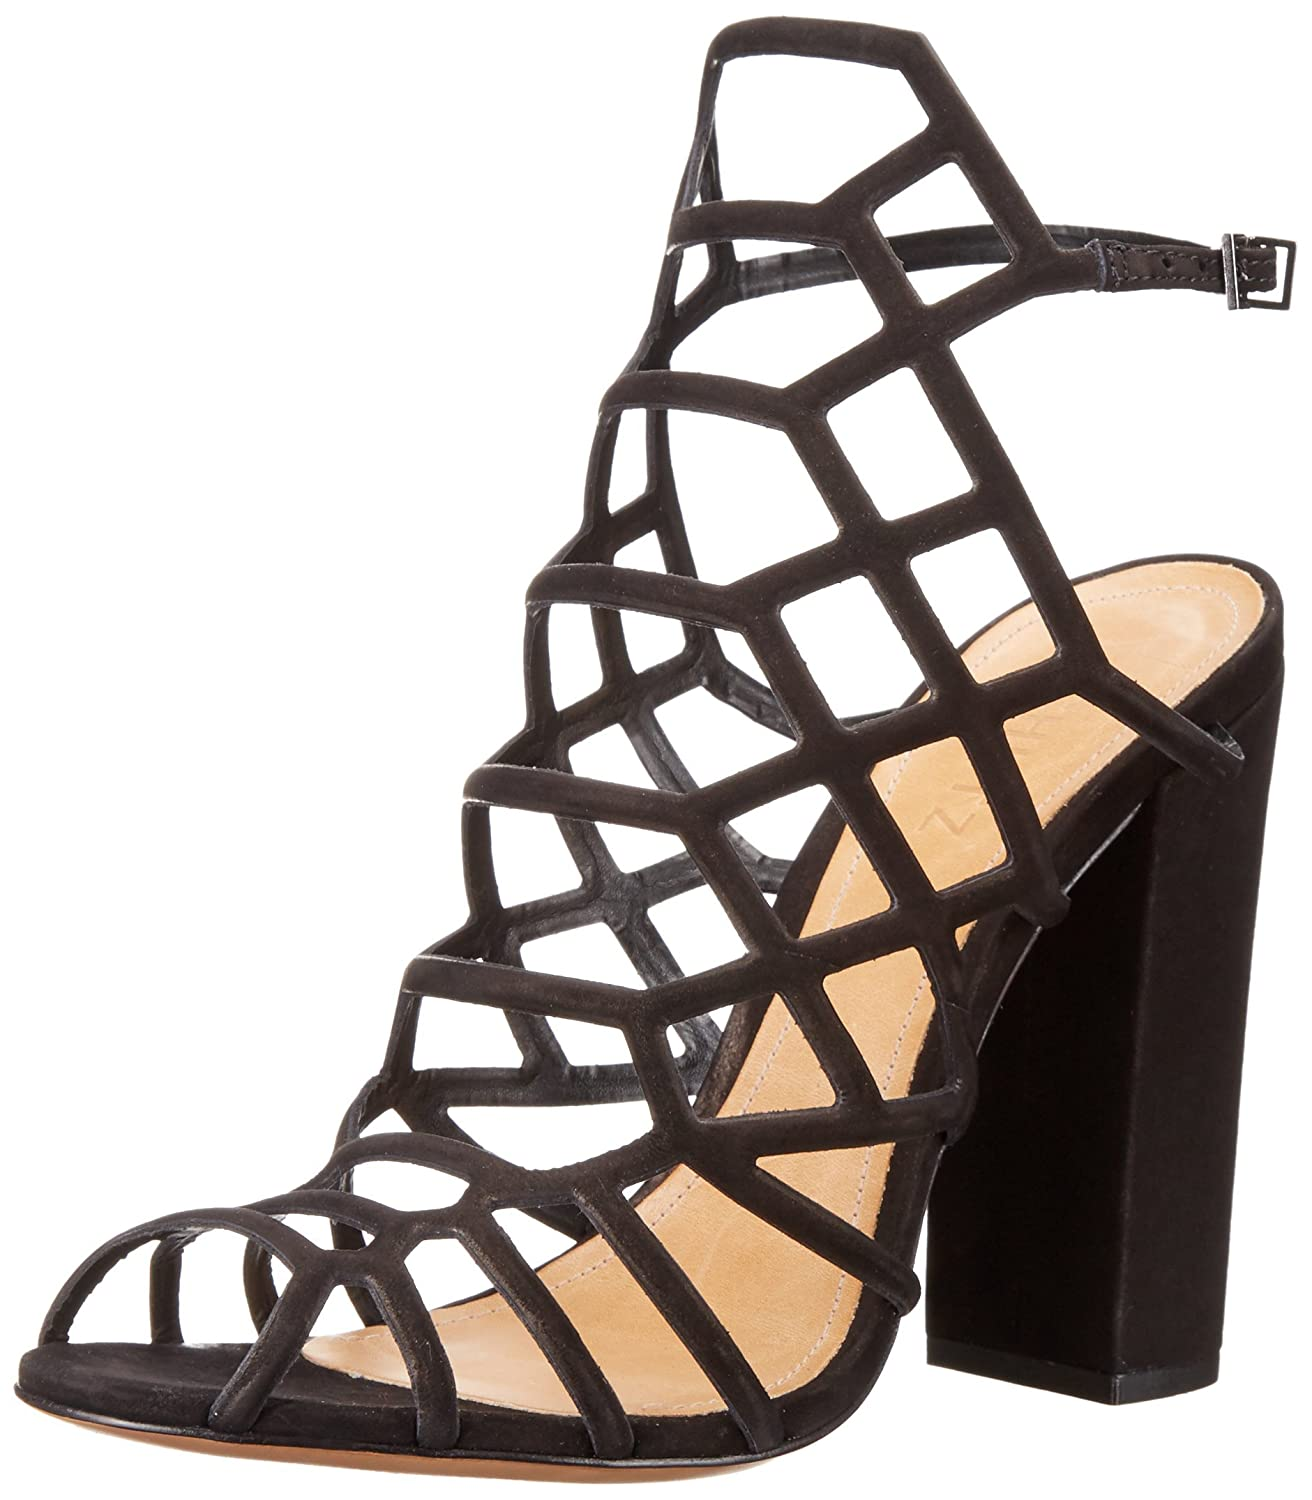 Image result for schutz shoes